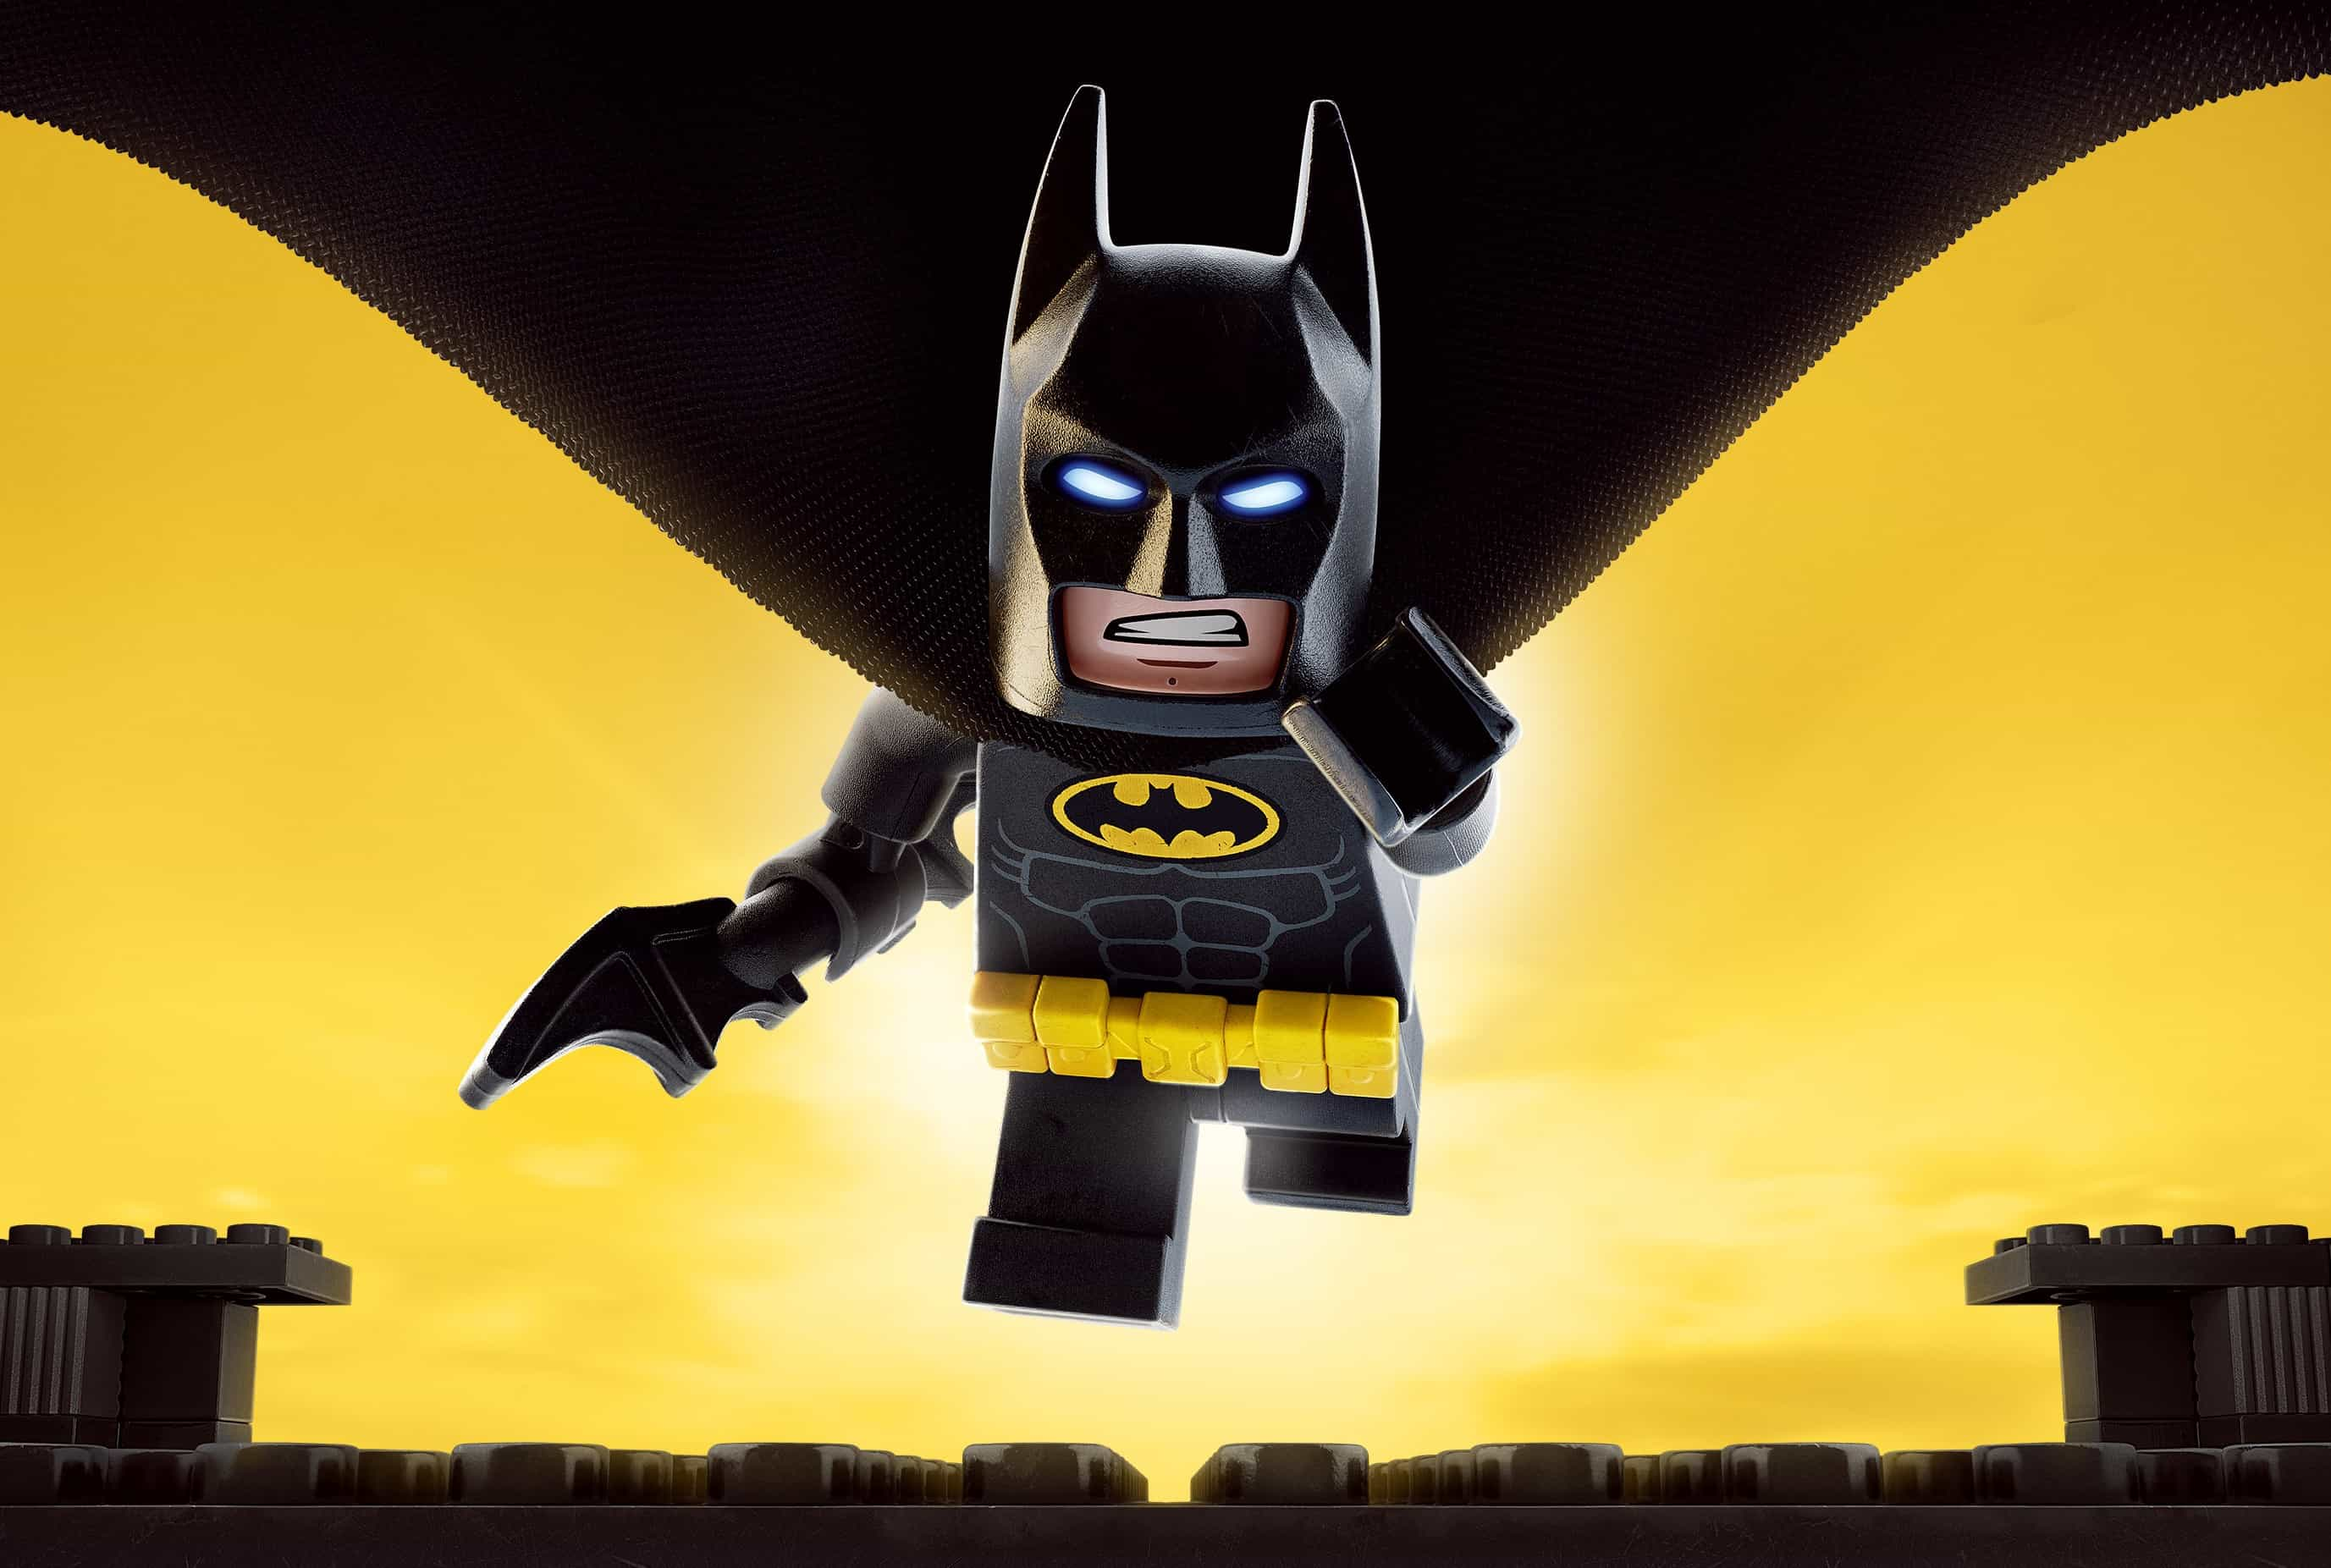 6 New Character Posters For u2018The LEGO Batman Movieu2019 Released